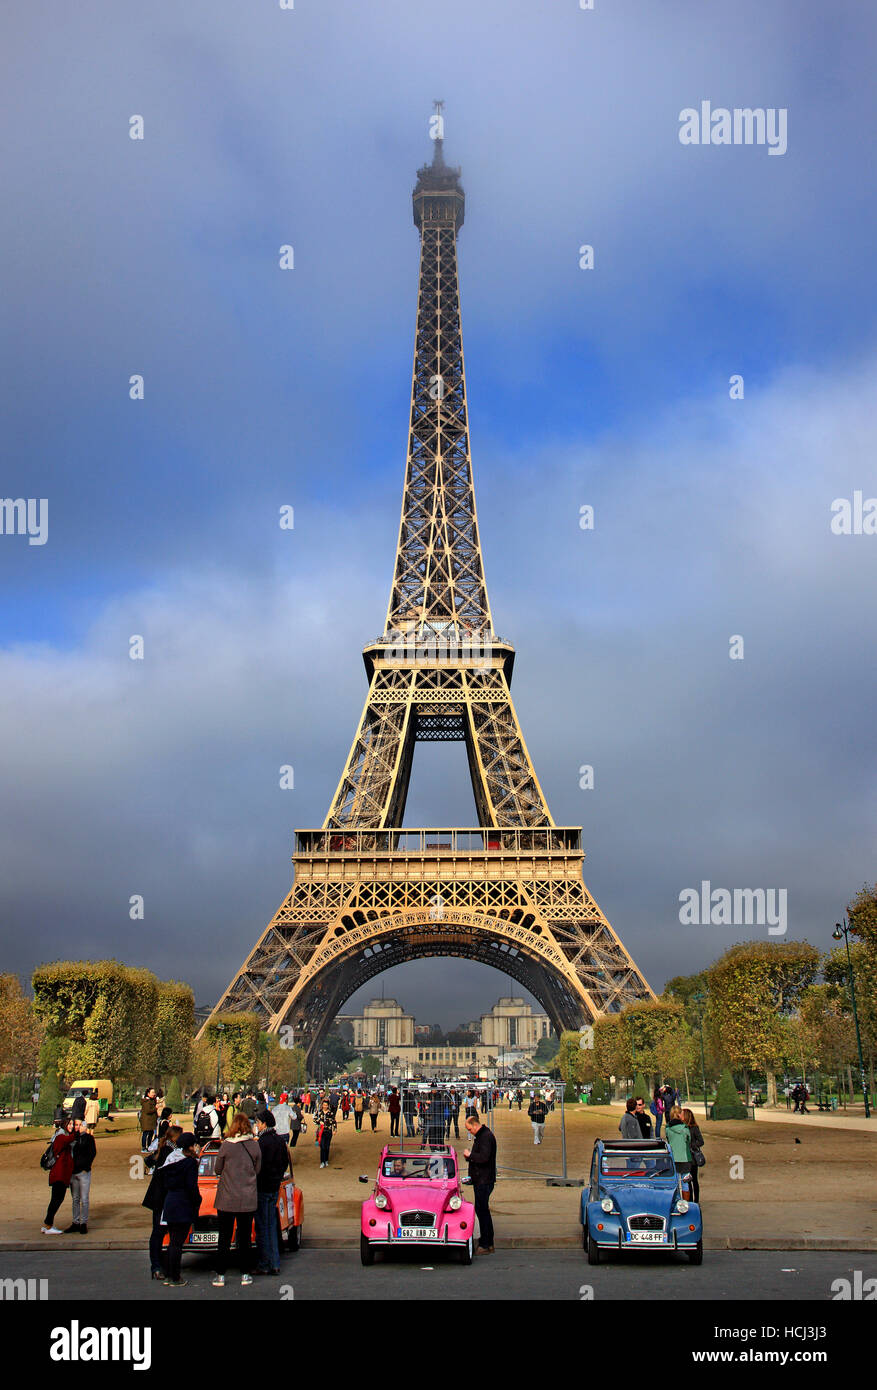 View of the Eiffel tower from the side of Champ de Mars, Paris, France. Stock Photo